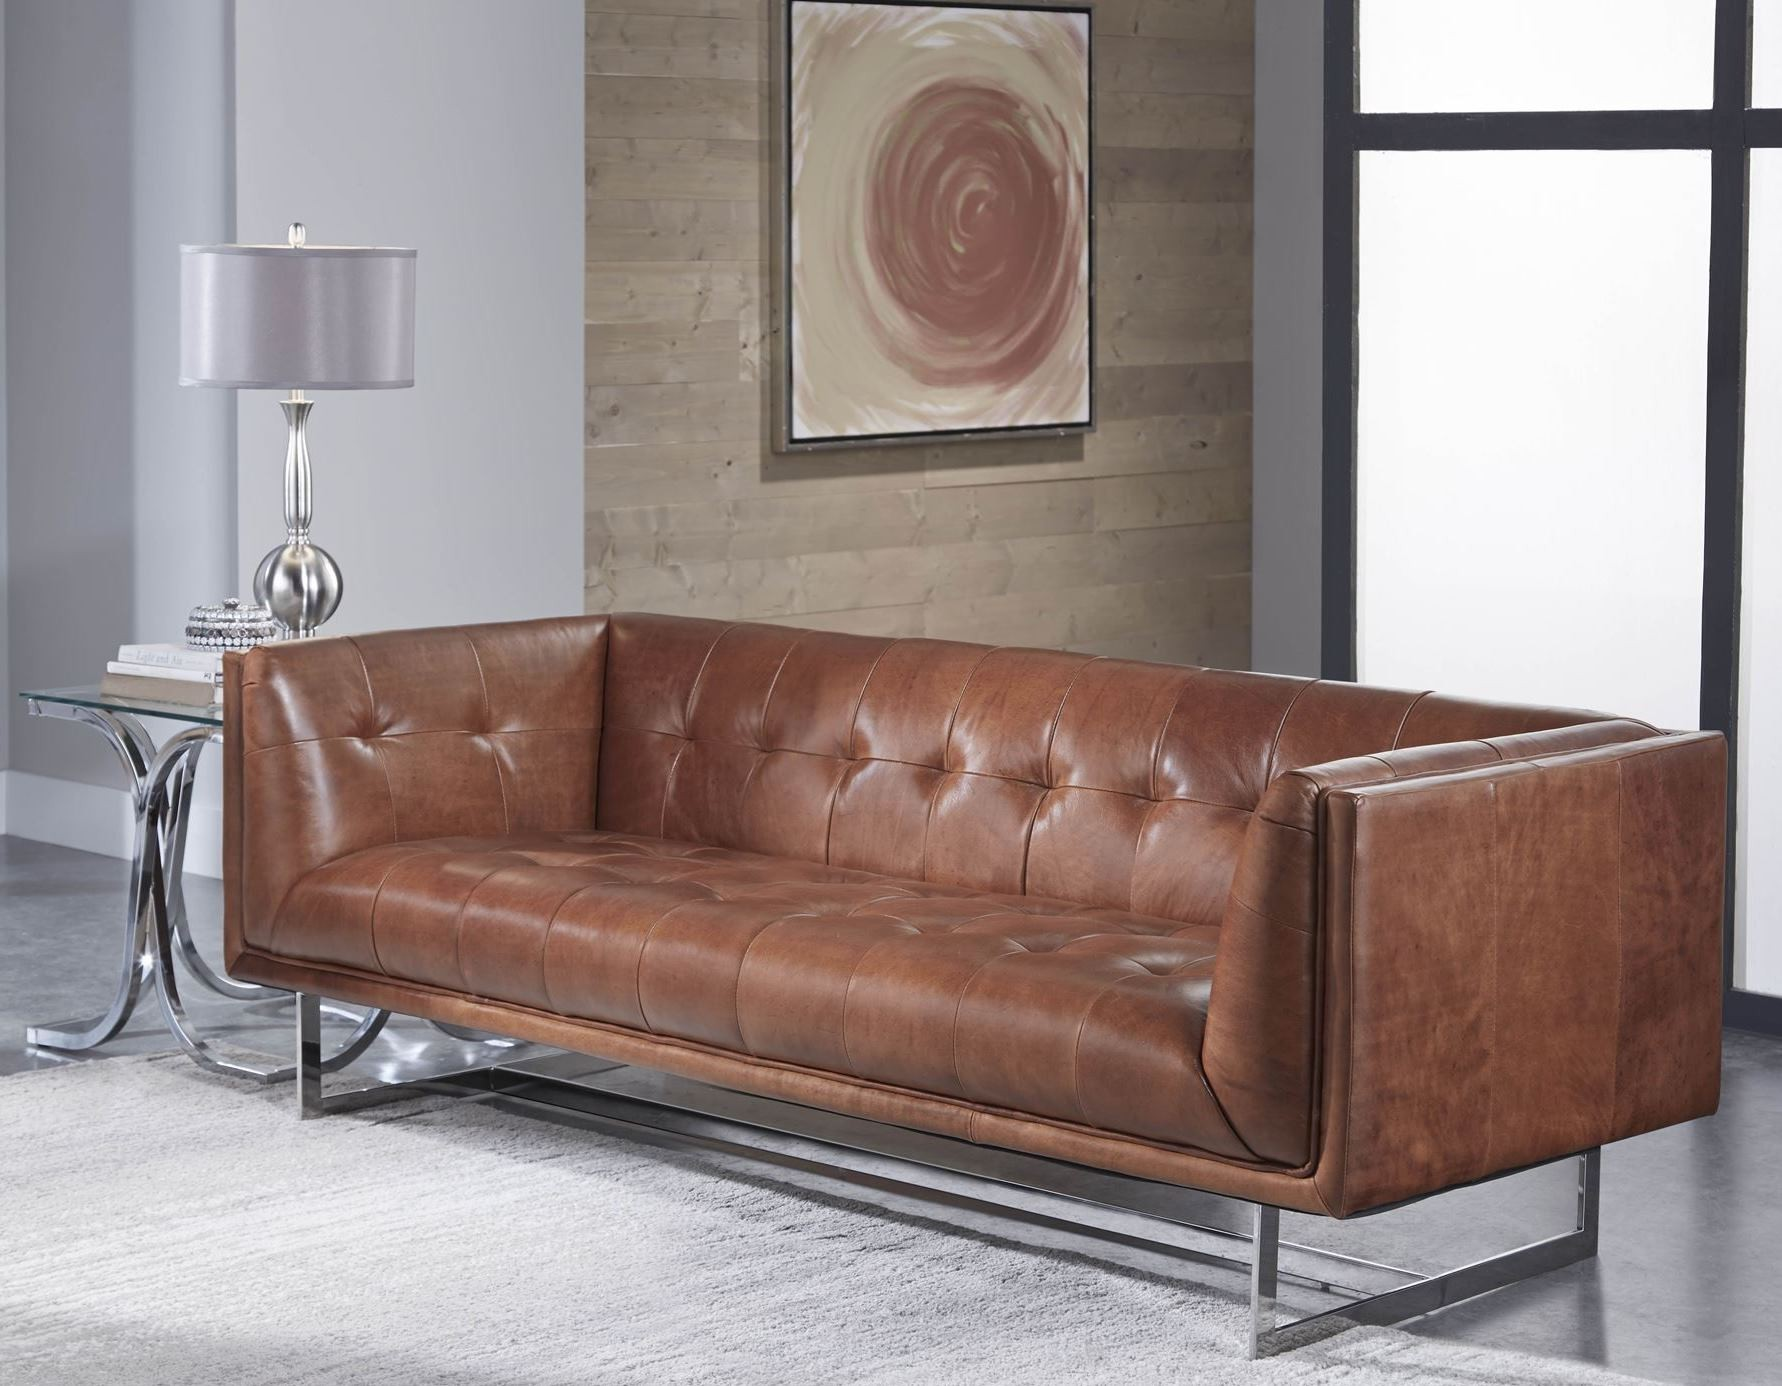 teague cognac leather sofa from lazzaro wh 1440 30 9027 coleman furniture. Black Bedroom Furniture Sets. Home Design Ideas